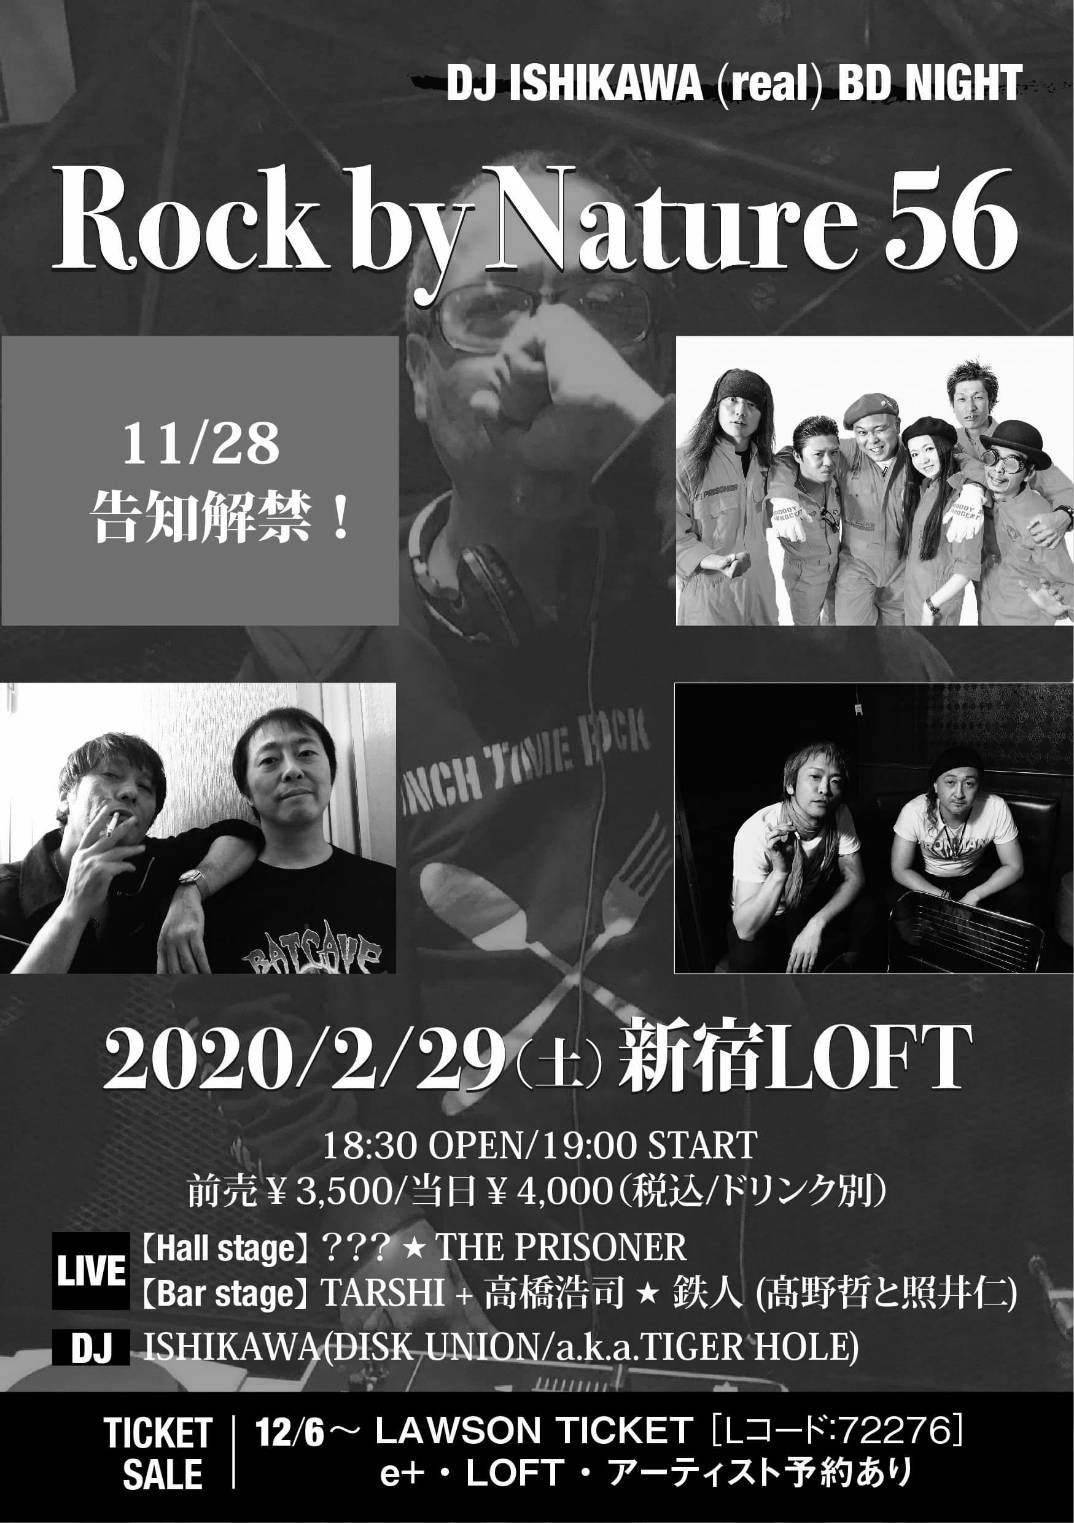 鉄人 2/29 「Rock by Nature 56 ~DJ ISHIKAWA (real) BD NIGHT~」